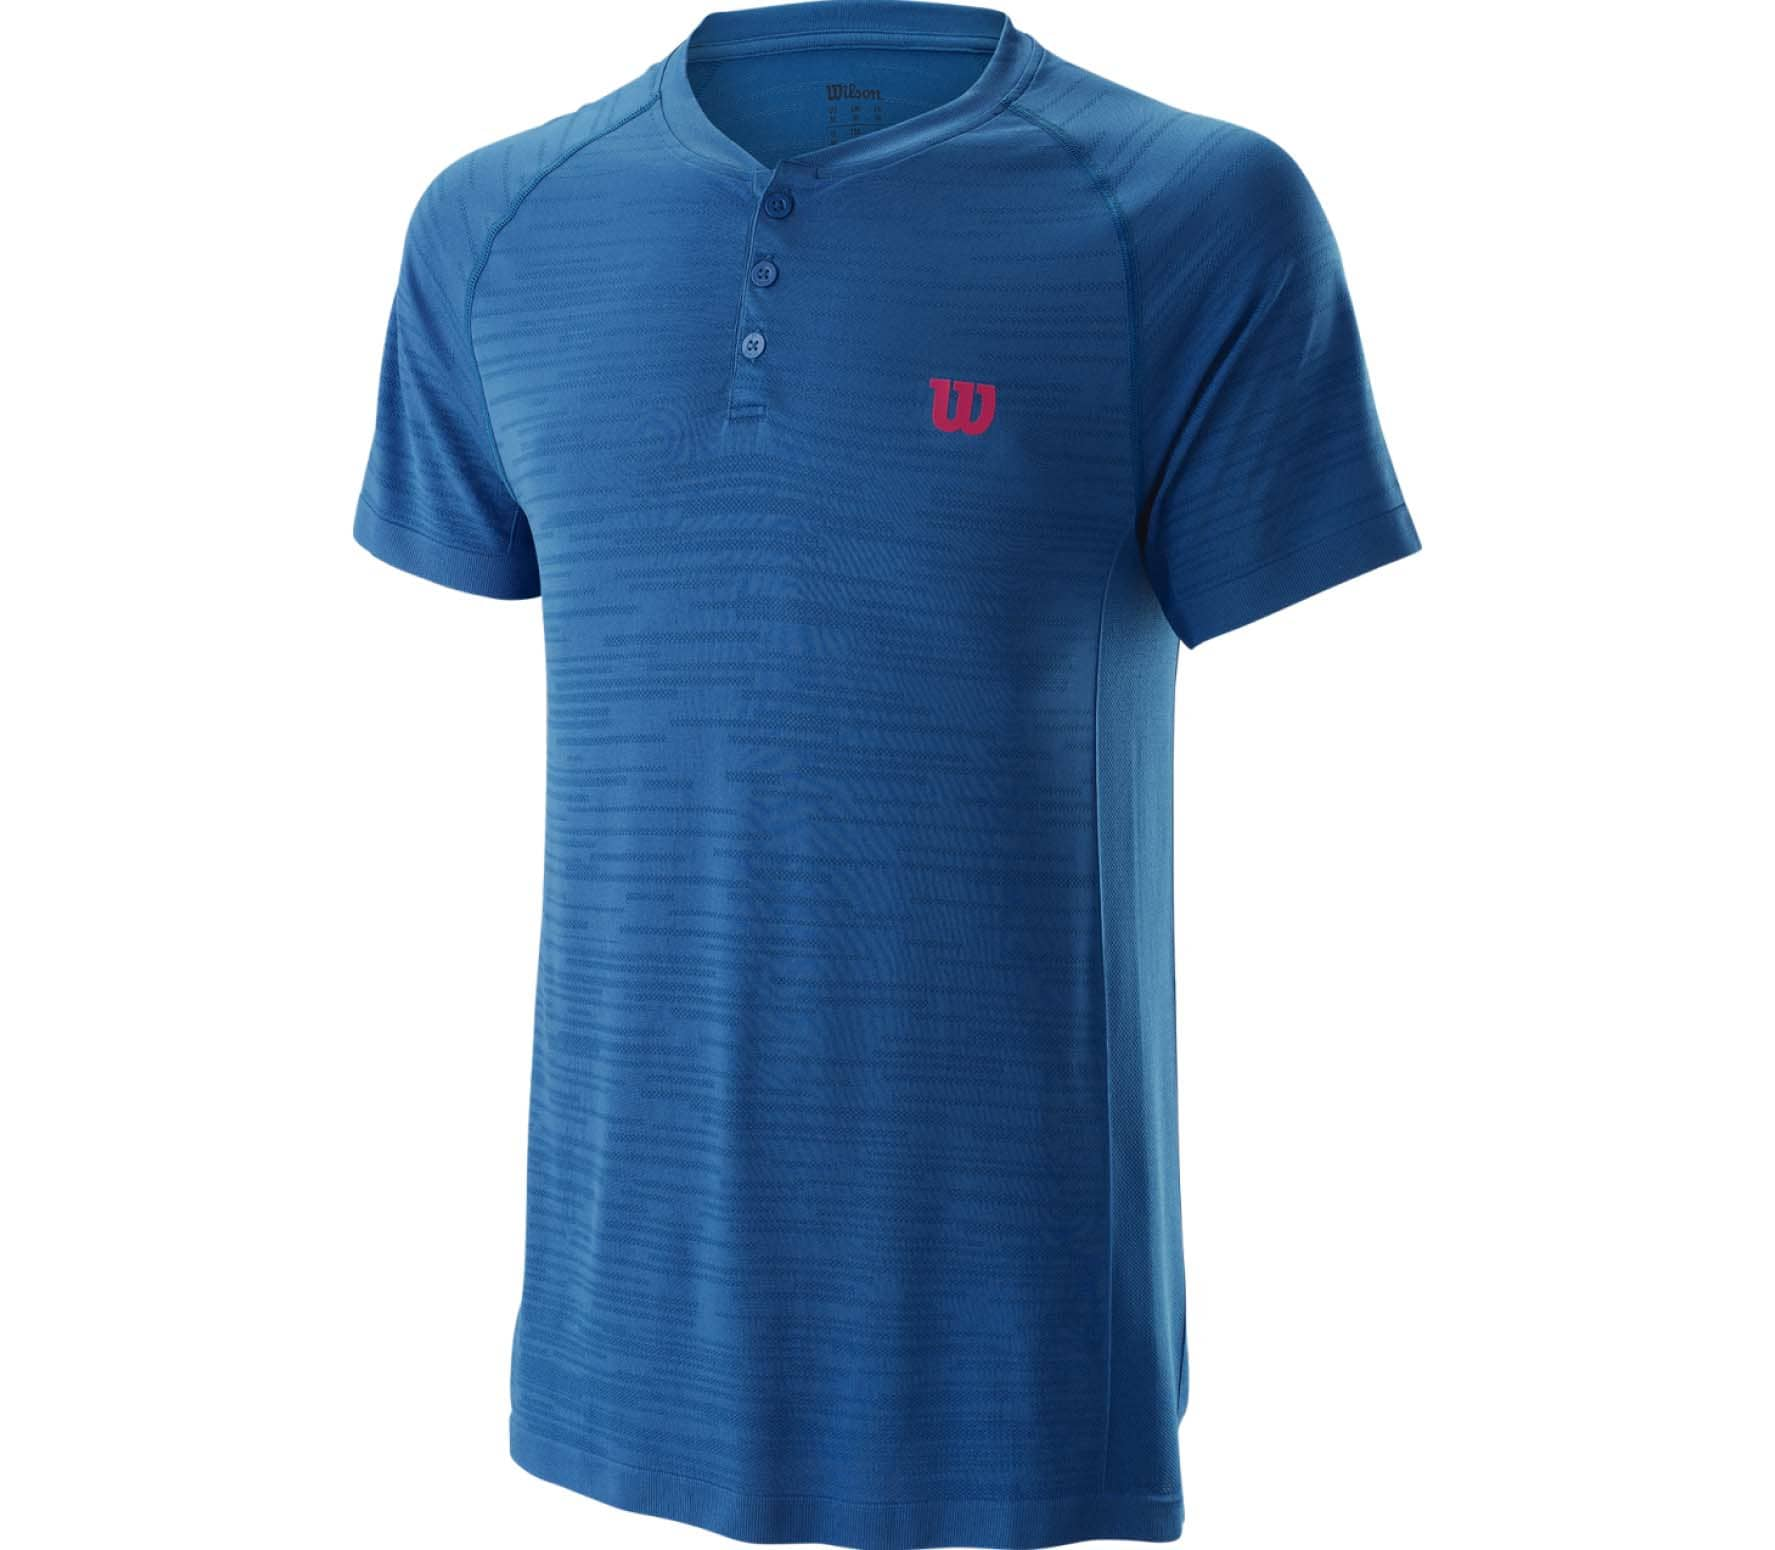 Competition Seamless Henley Hommes Haut tennis